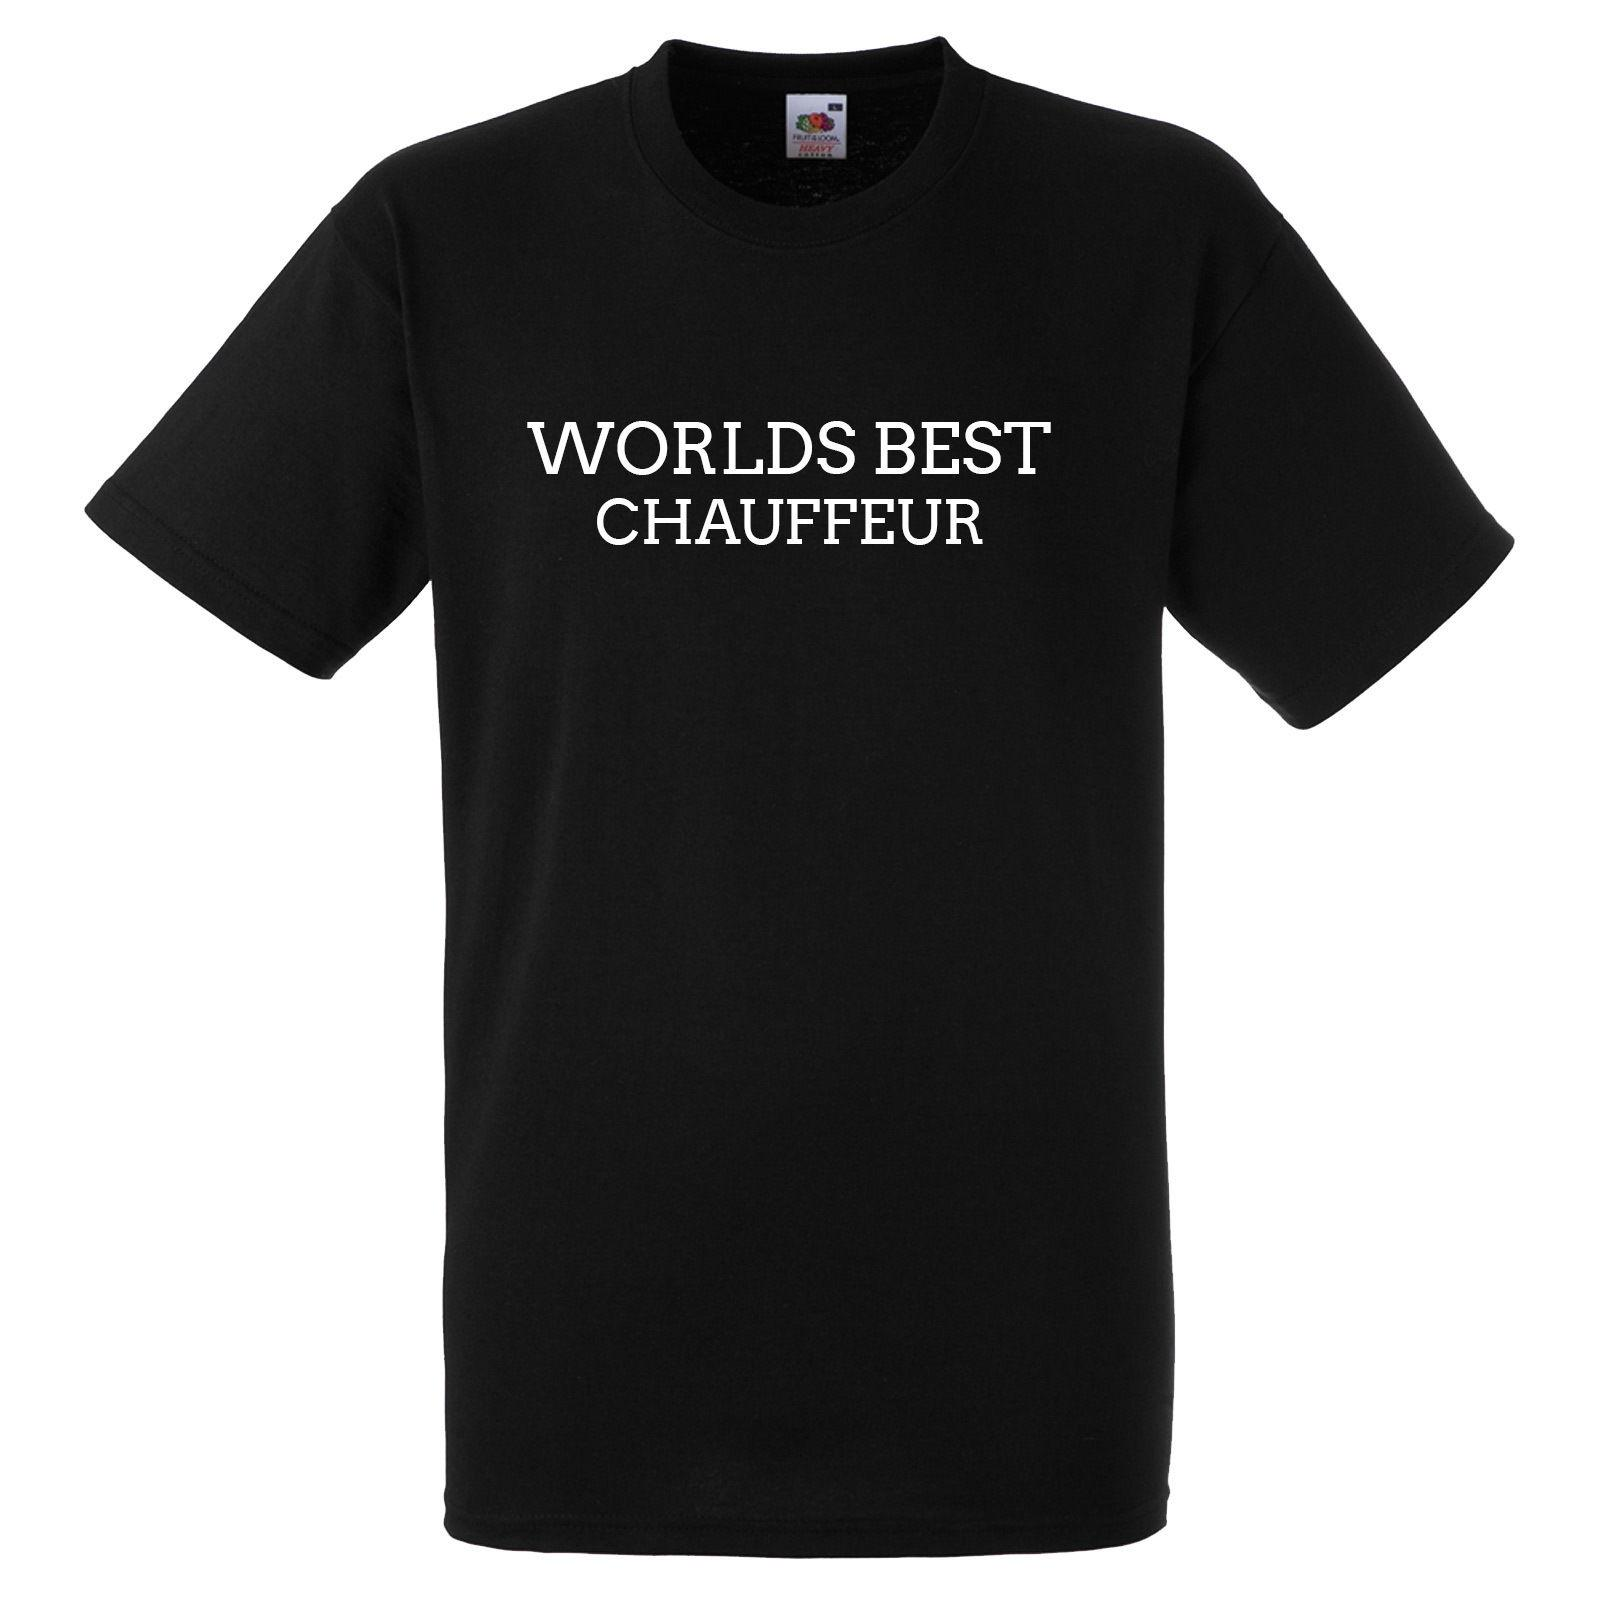 WORLDS BEST CHAUFFEUR BLACK T SHIRT Summer Casual Man T Shirt Good Quality Short Sleeve Cheap Sale Cotton T Shirt Irish